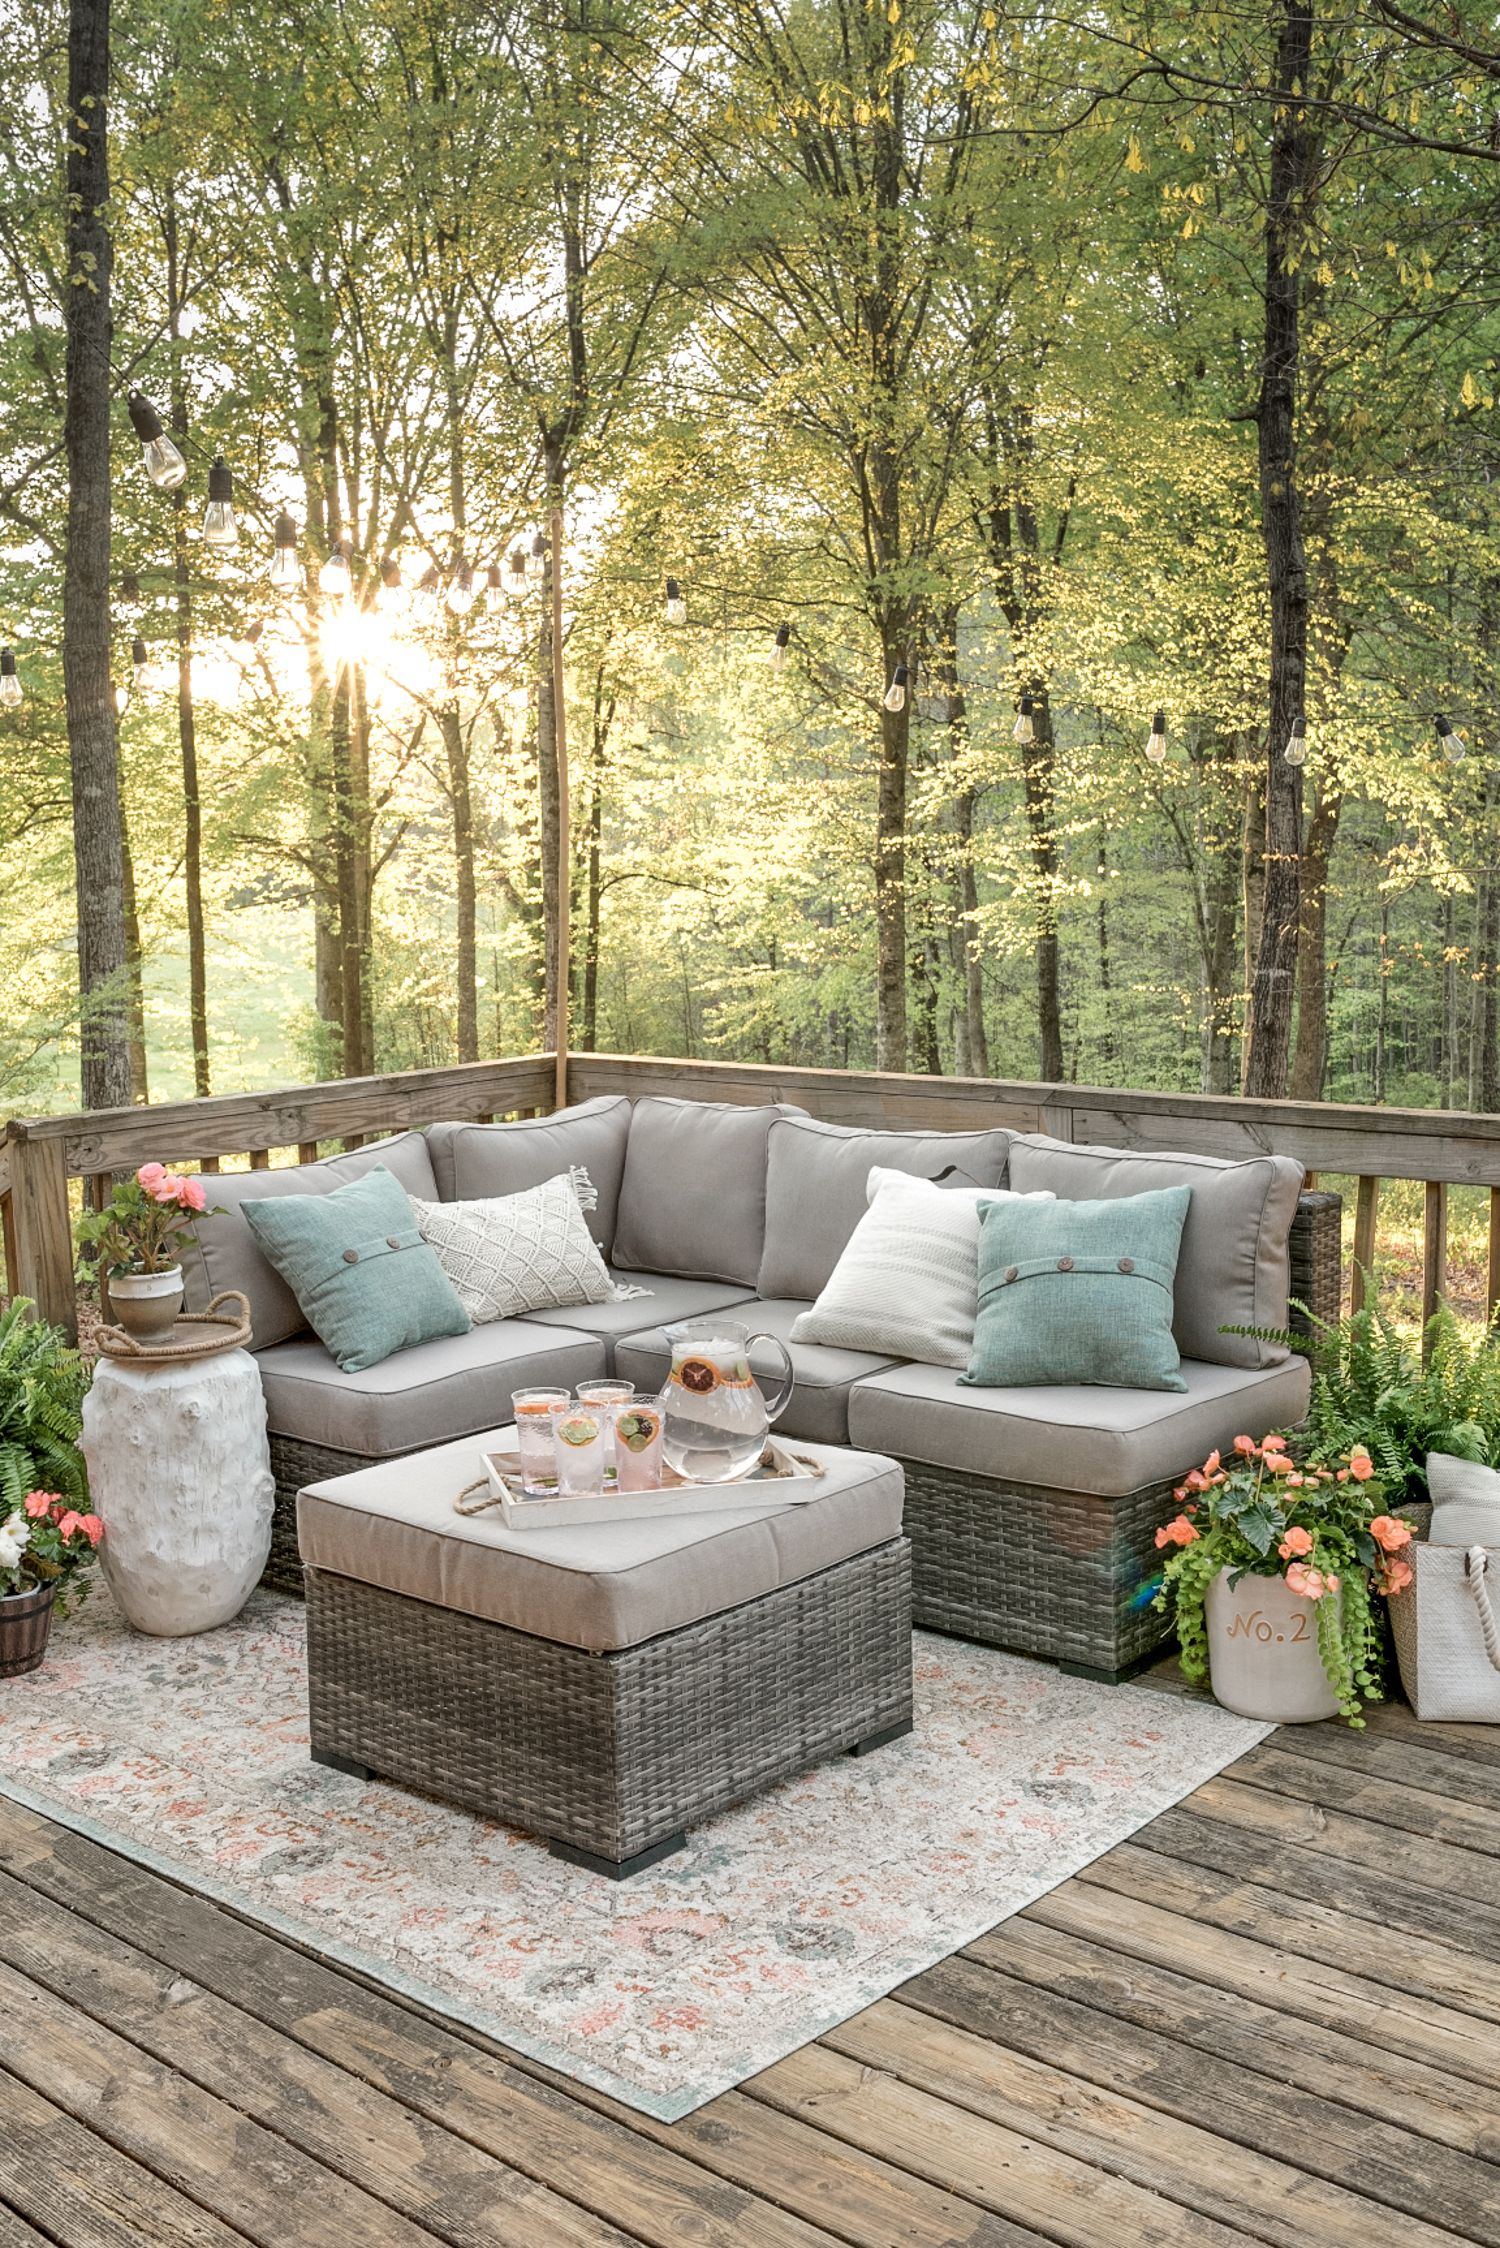 Pin By Janeen Nelson On Yard Re Do In 2020 Outdoor Patio Space